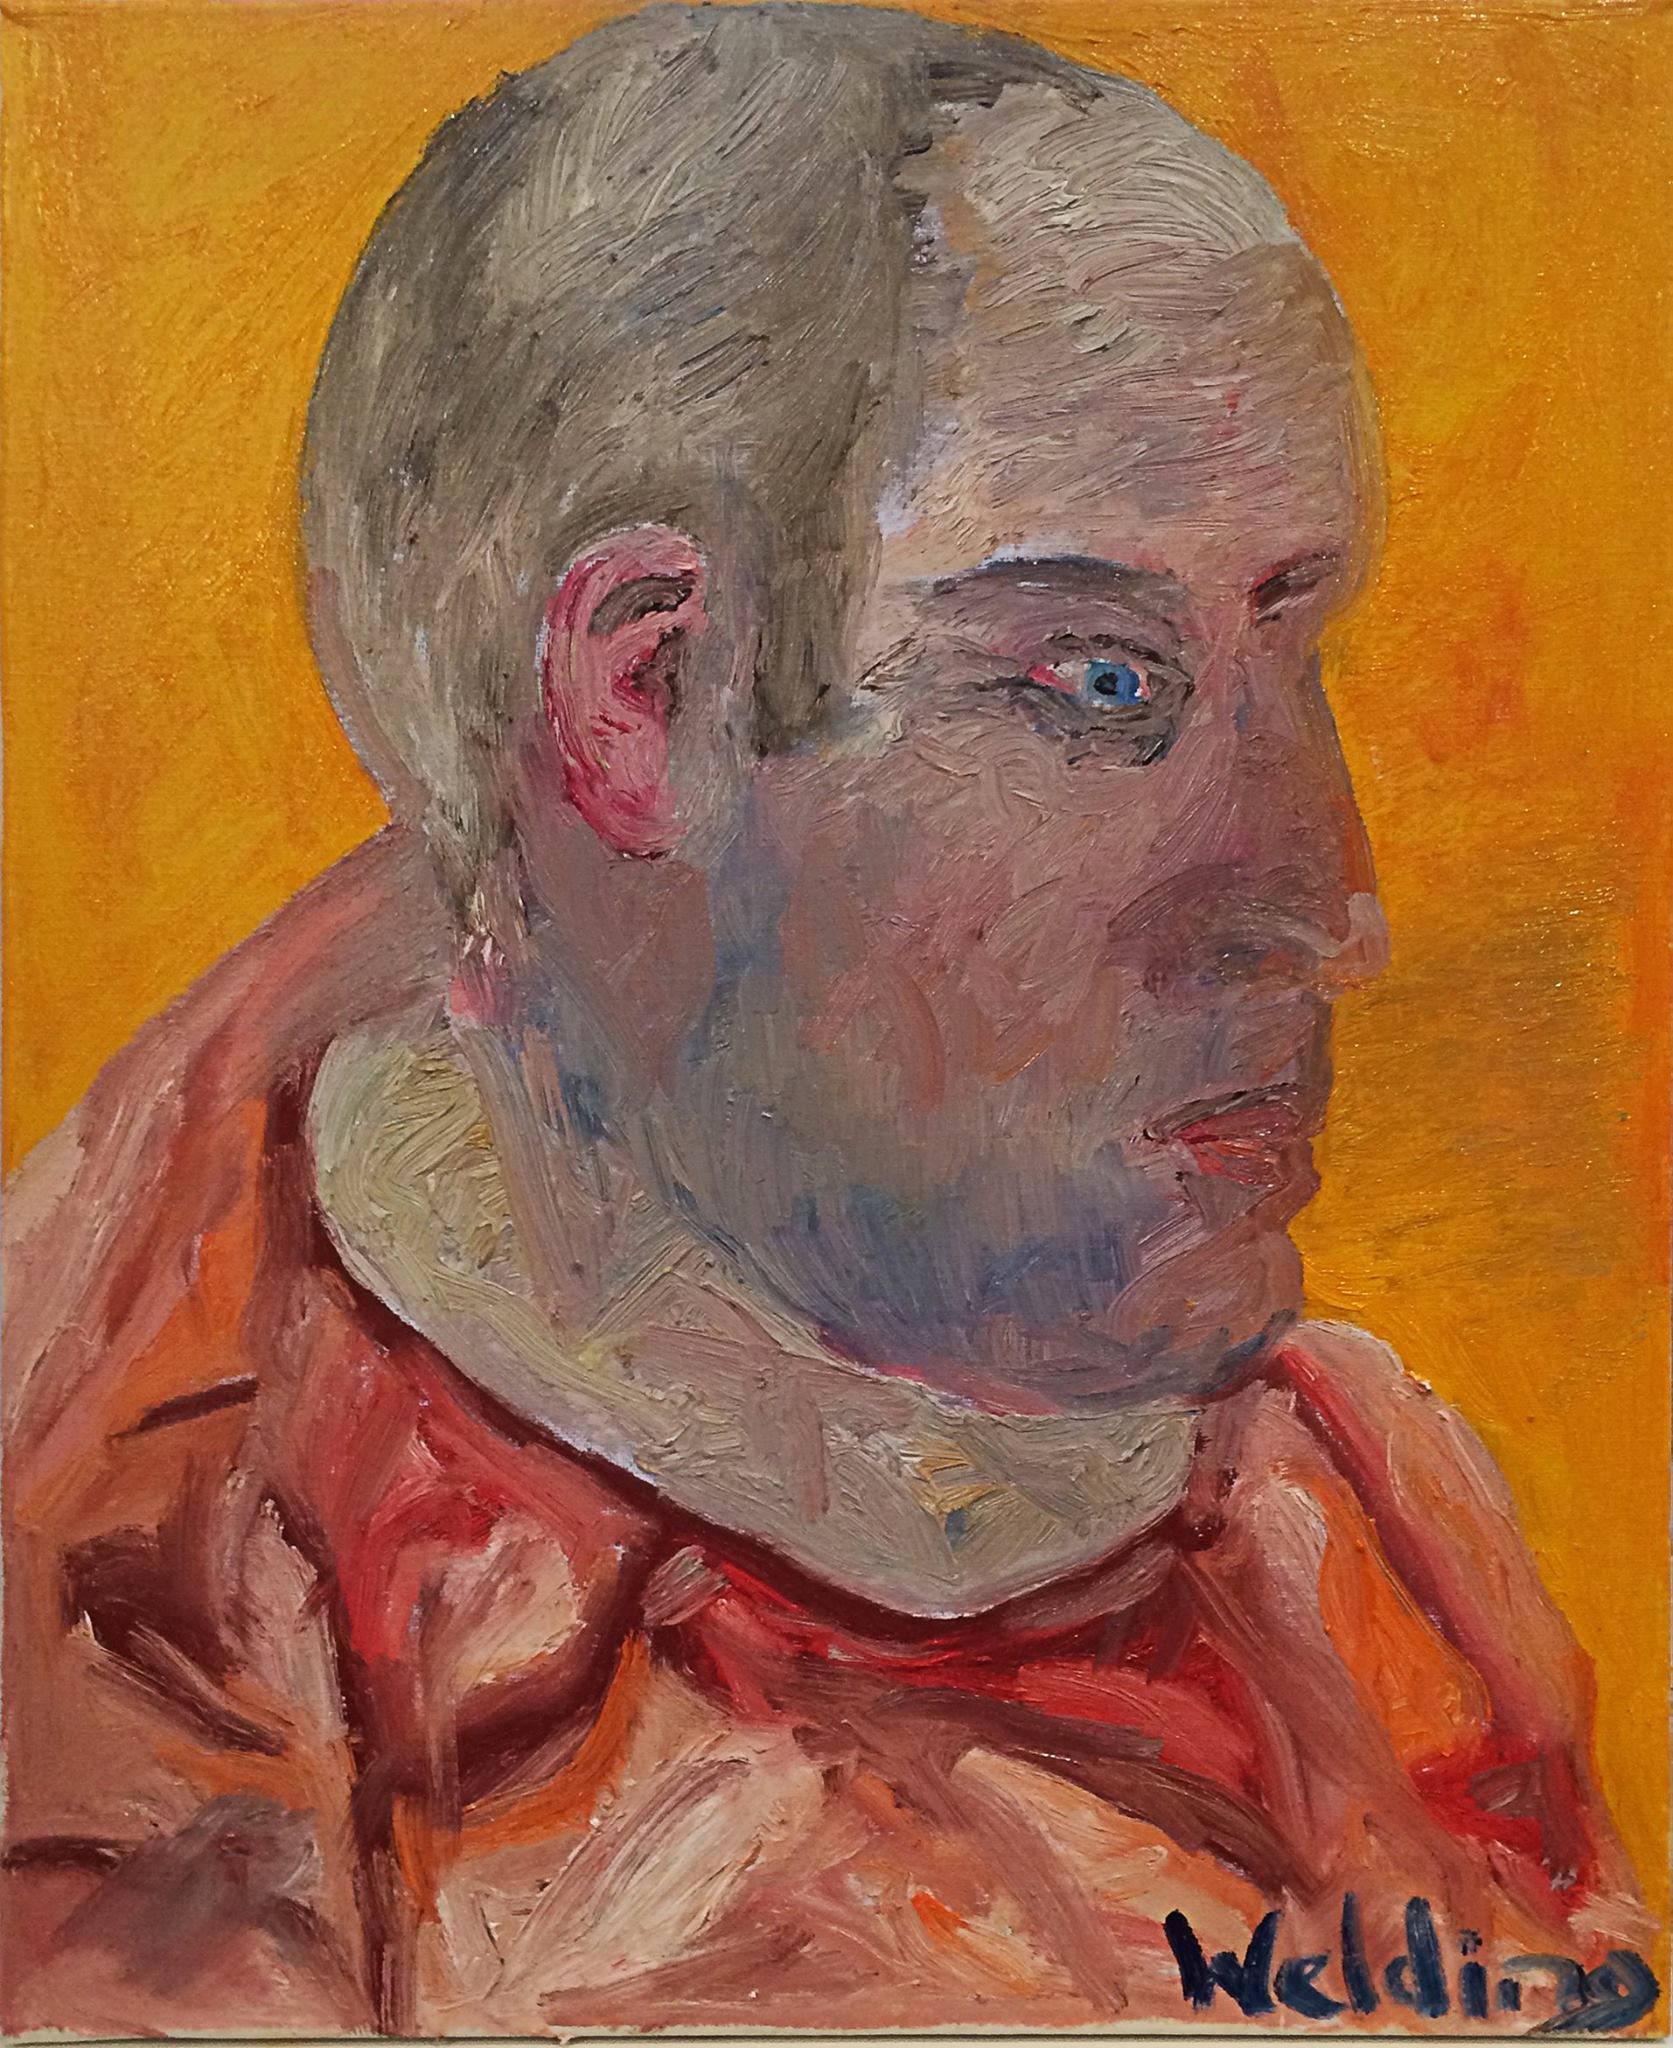 Portrait of Frazer by Andrew Welding